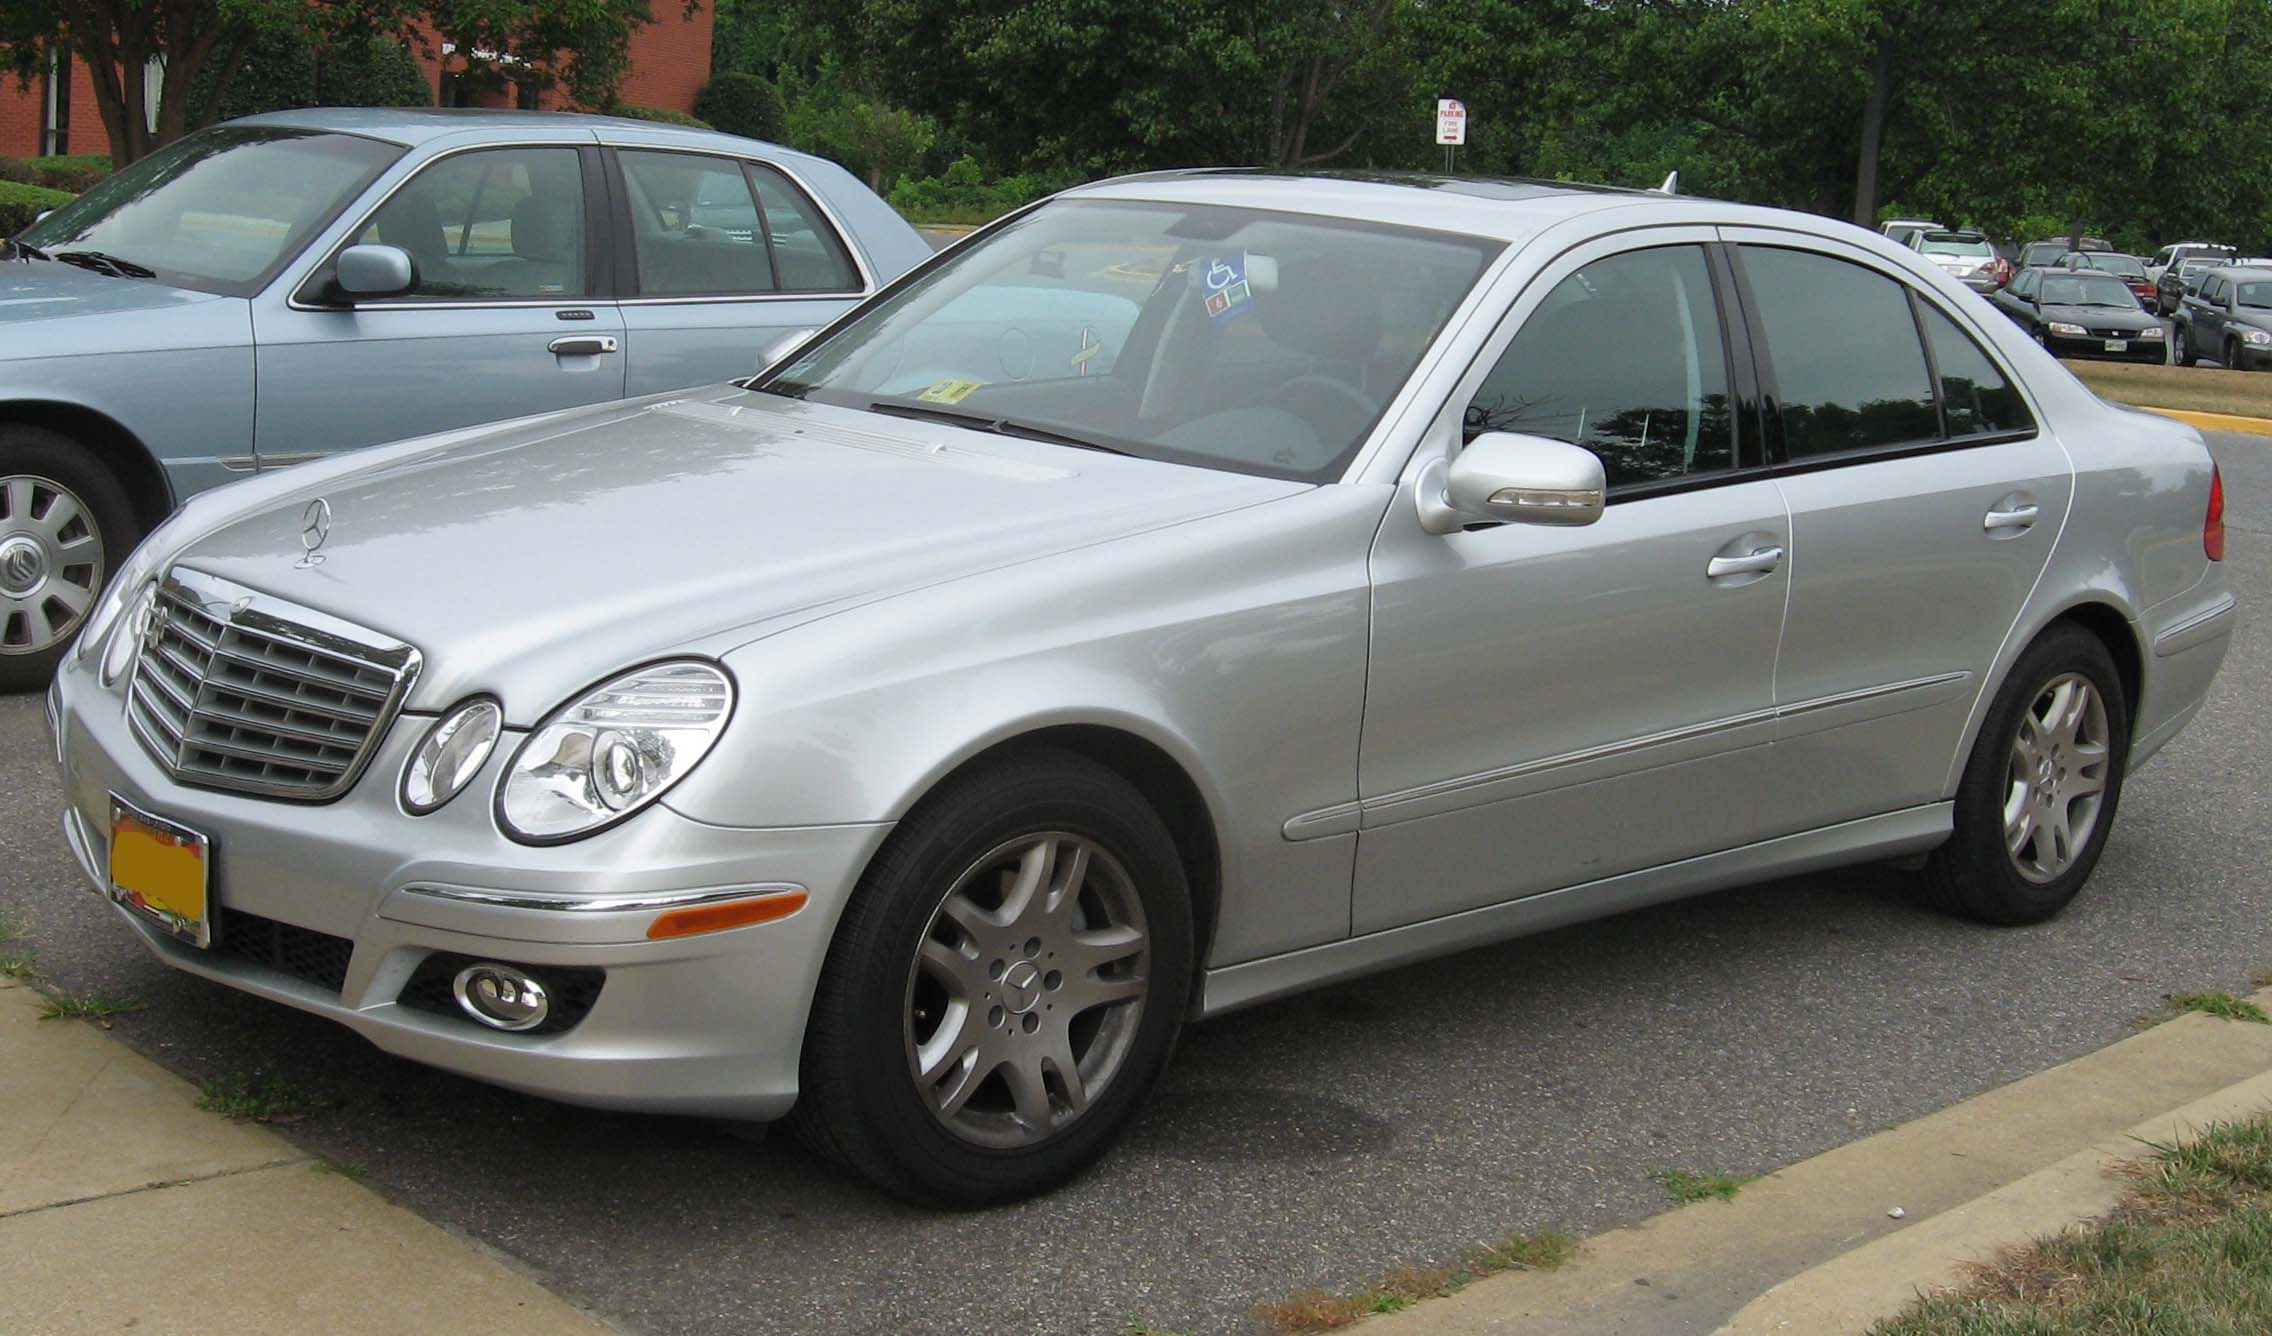 File:2007-Mercedes-Benz-E320.jpg